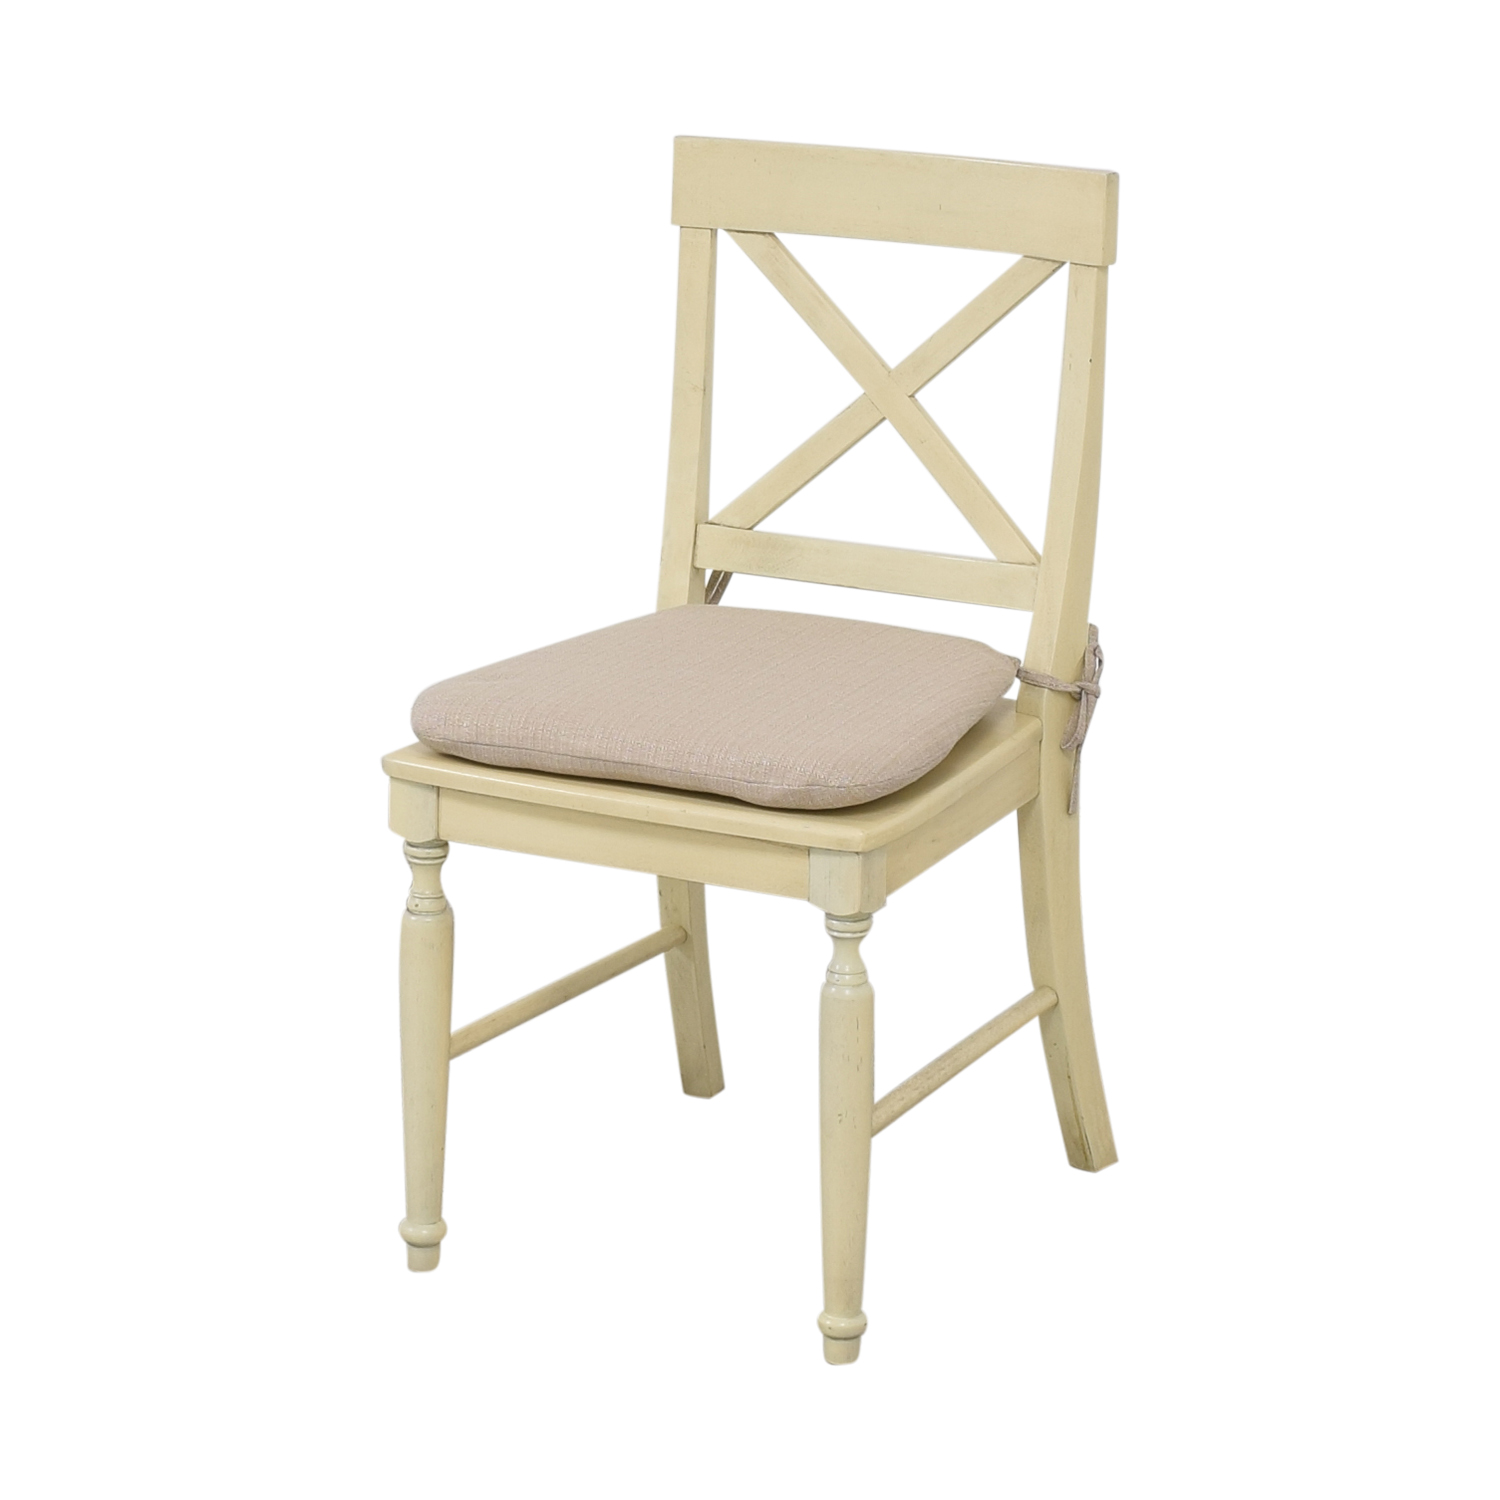 Christopher Knight Home Christopher Knight Home Dining Chairs ct